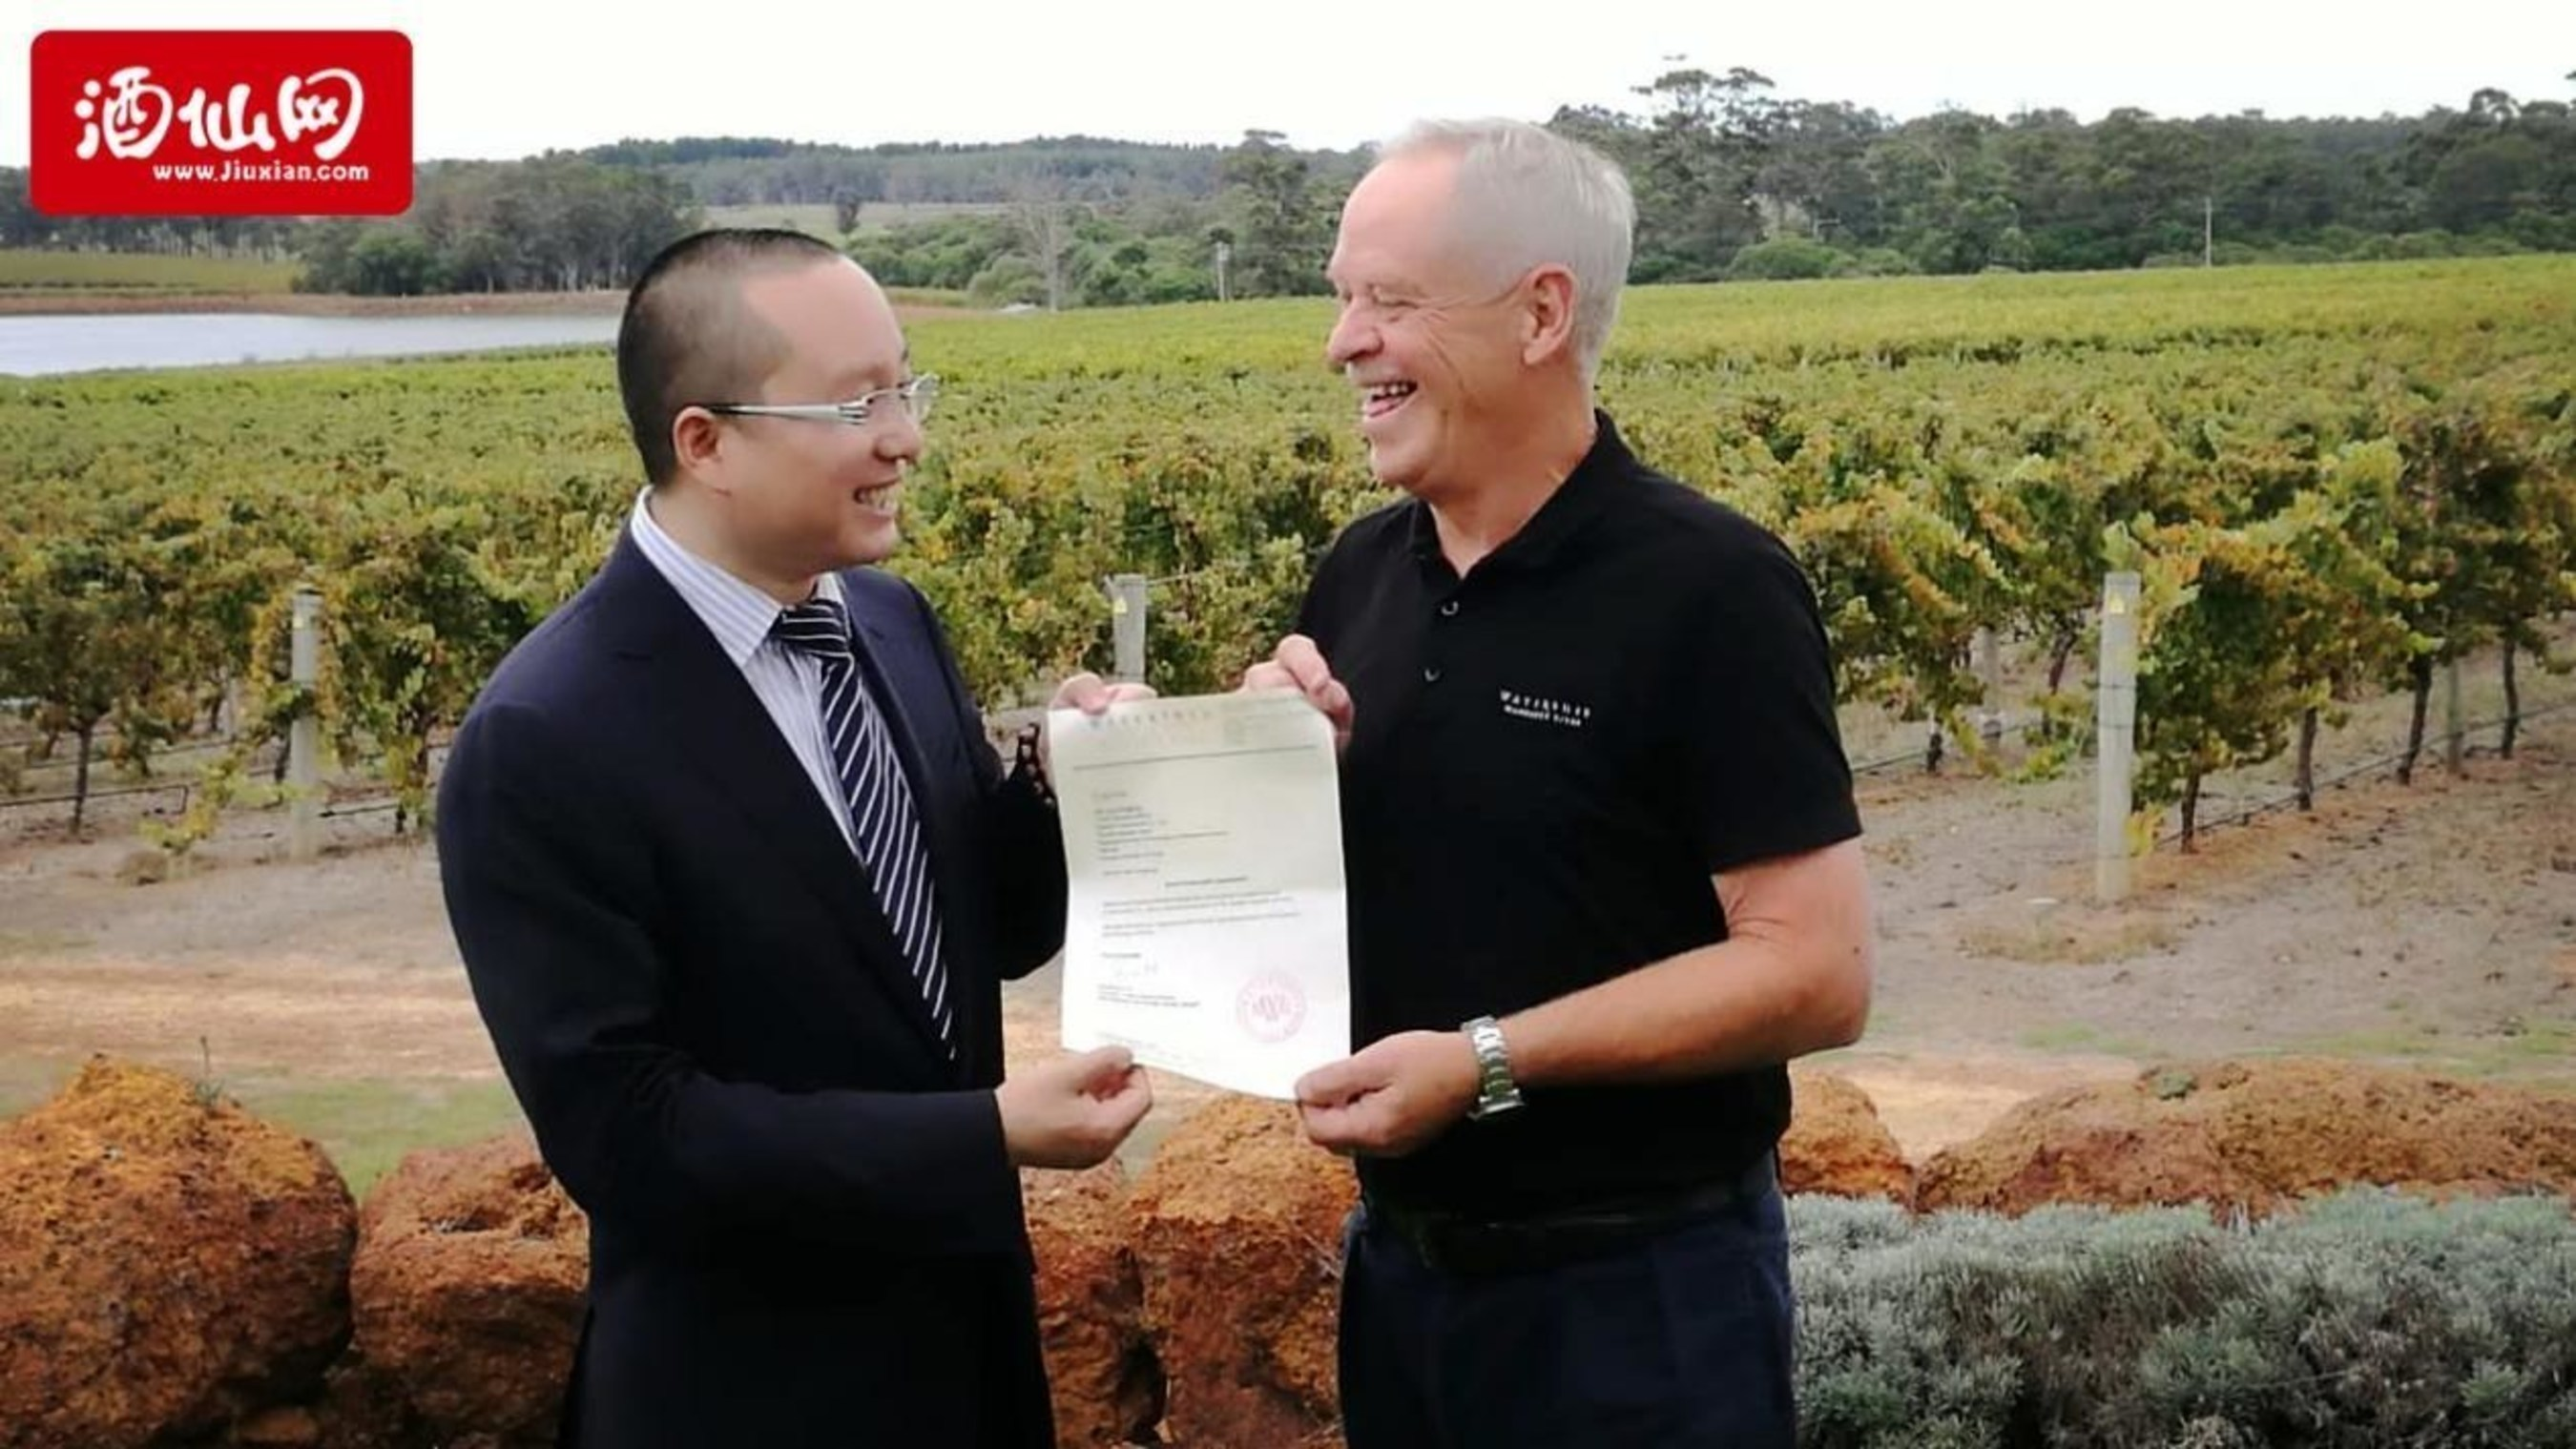 China's Largest Online Alcohol Retailer Jiuxian.com Visits Watershed Premium Wines as Part of Direct Purchase Agreement